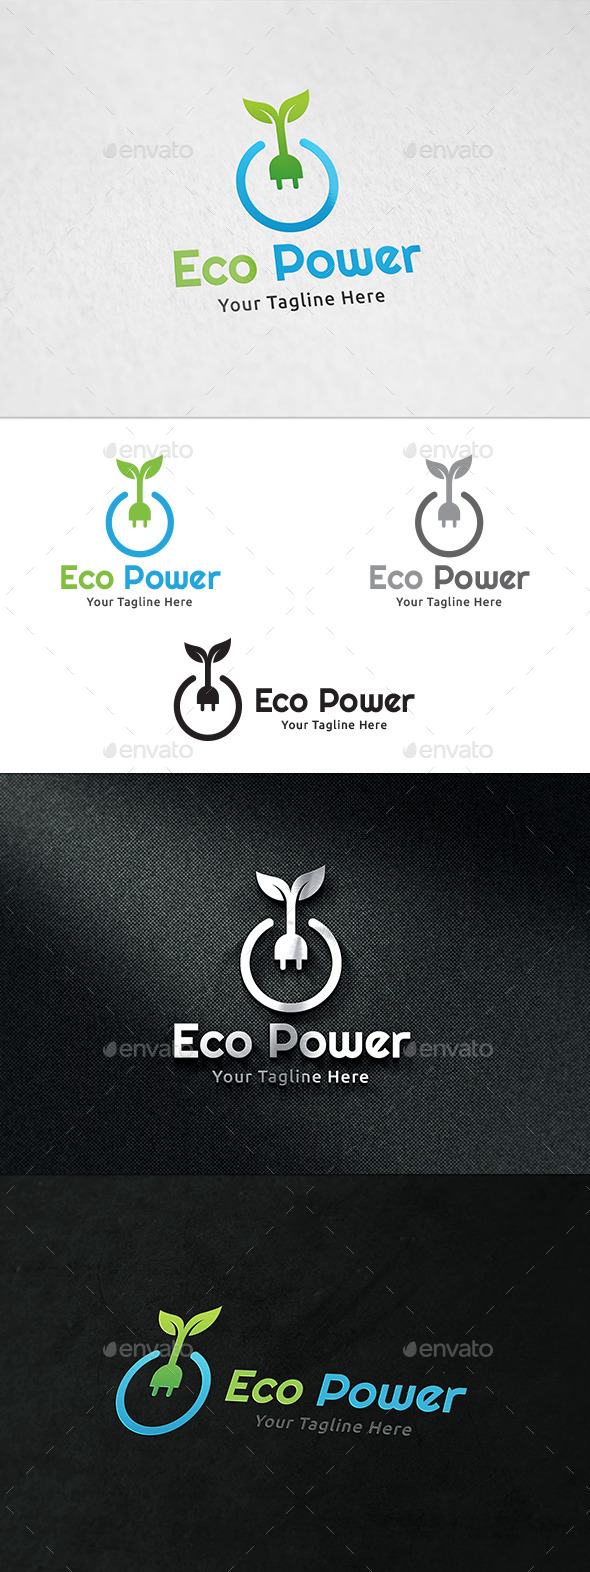 Eco Power Logo